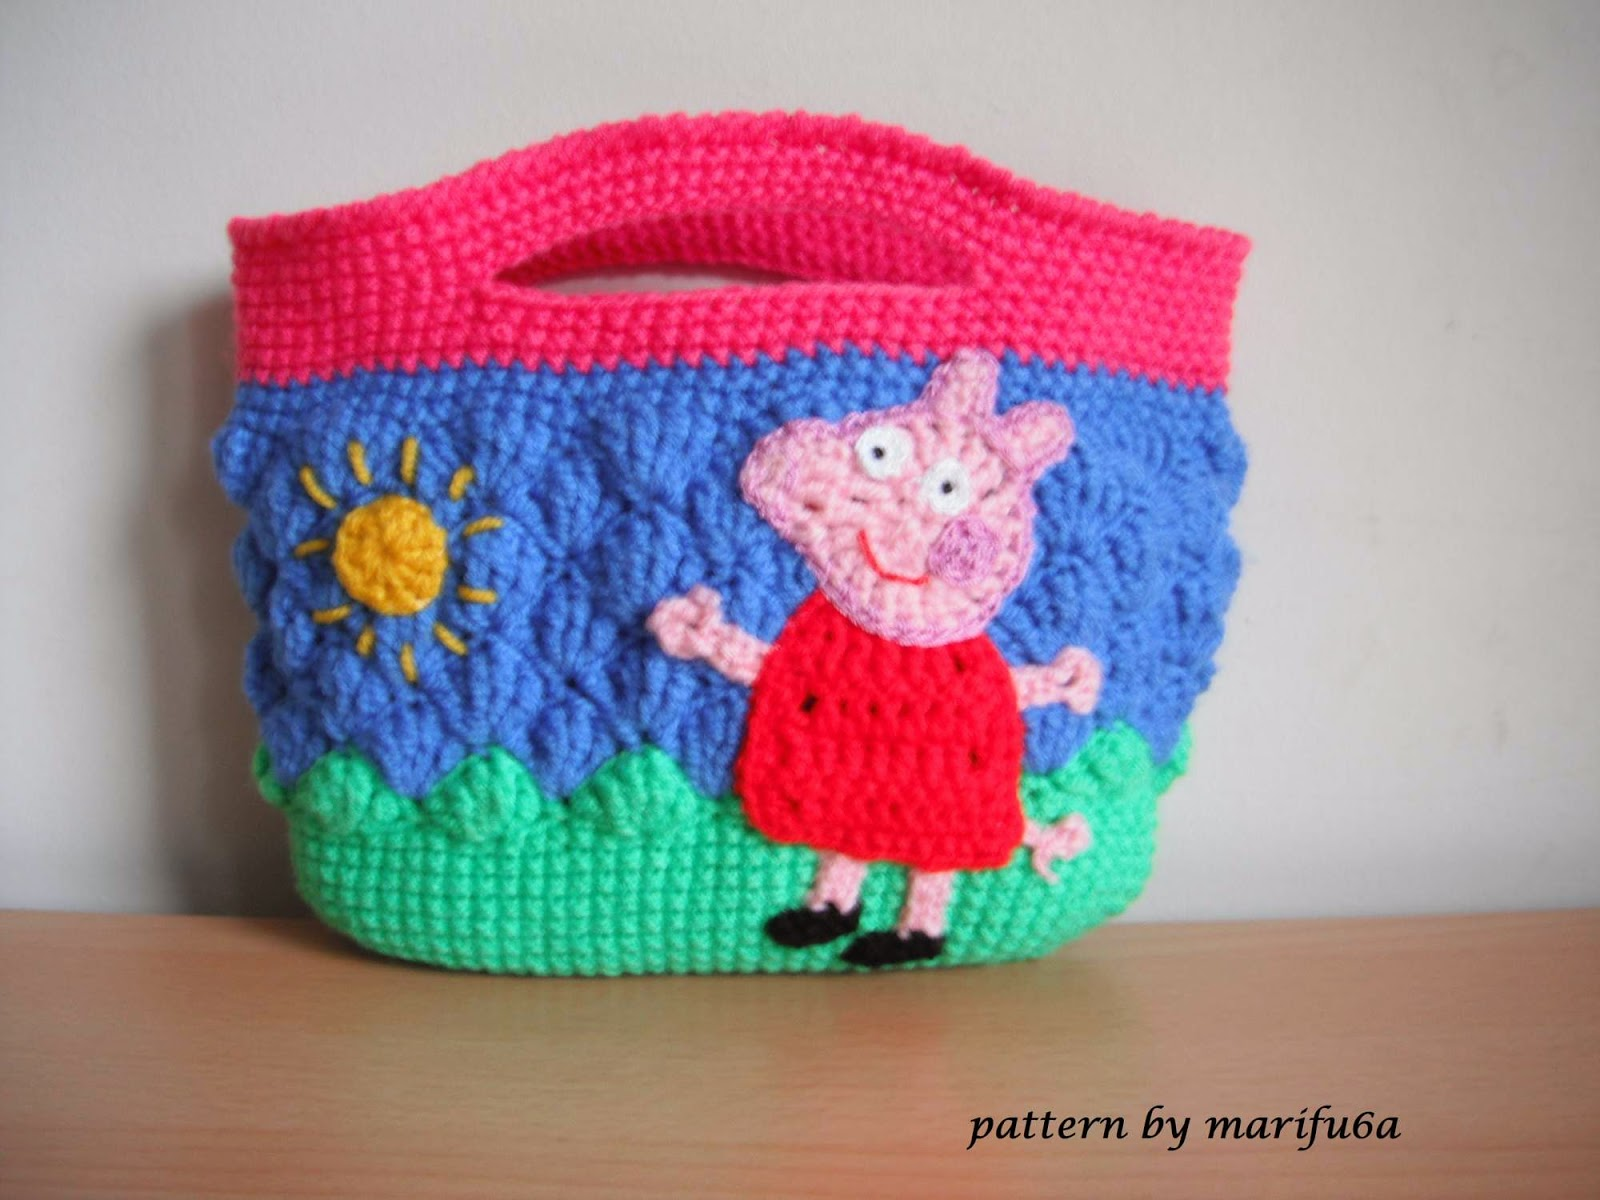 Free crochet patterns and video tutorials: how to crochet ...